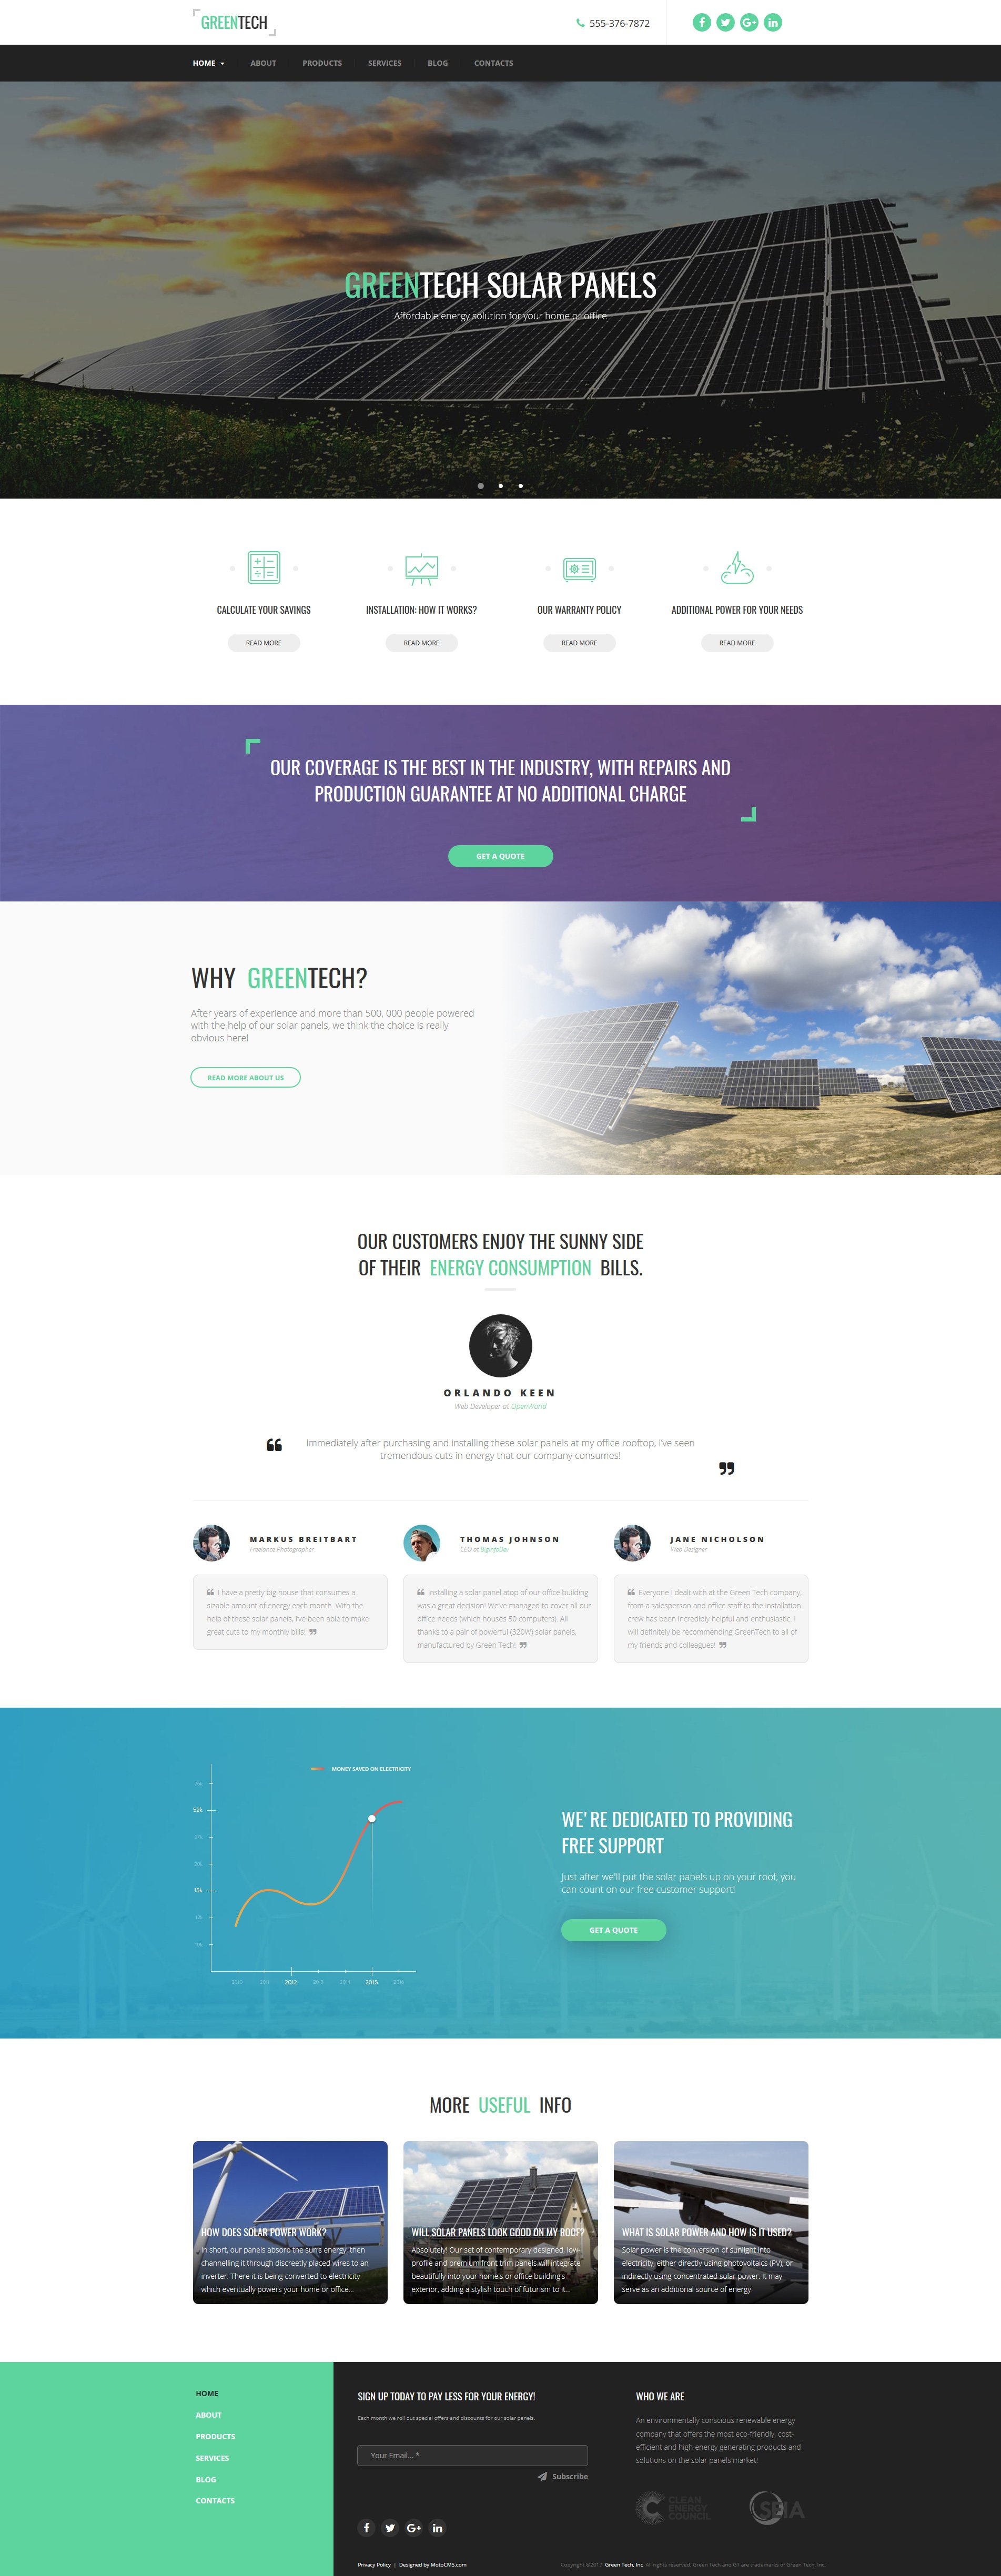 Responsive Moto CMS 3 Template over Zonne-energie №63731